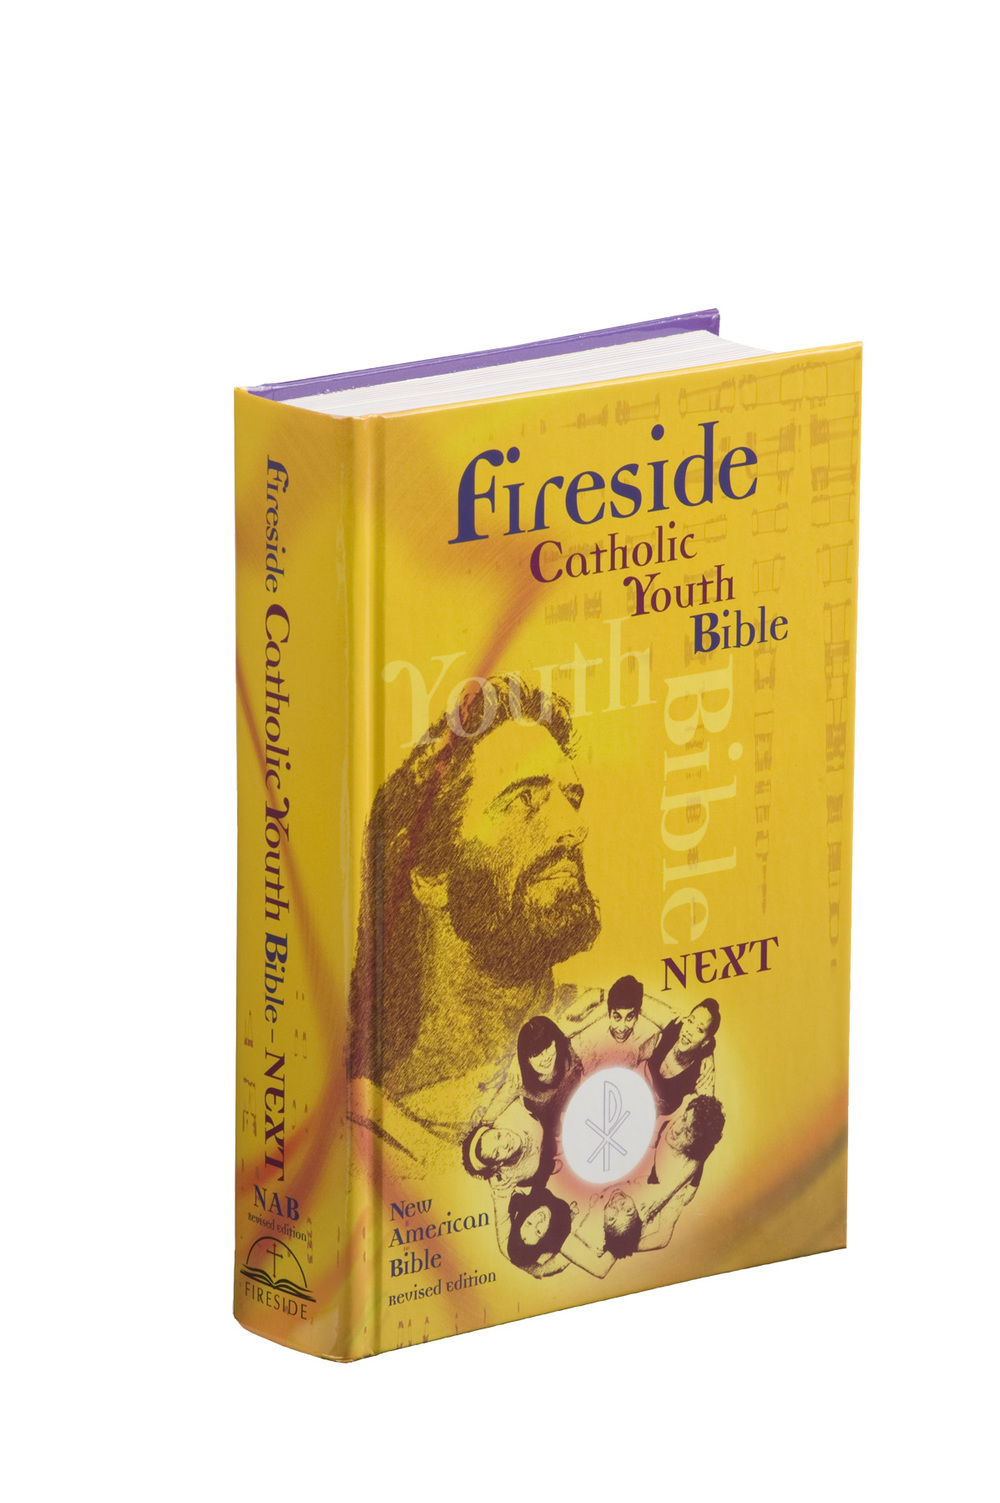 Catholic Youth Bible $35.97